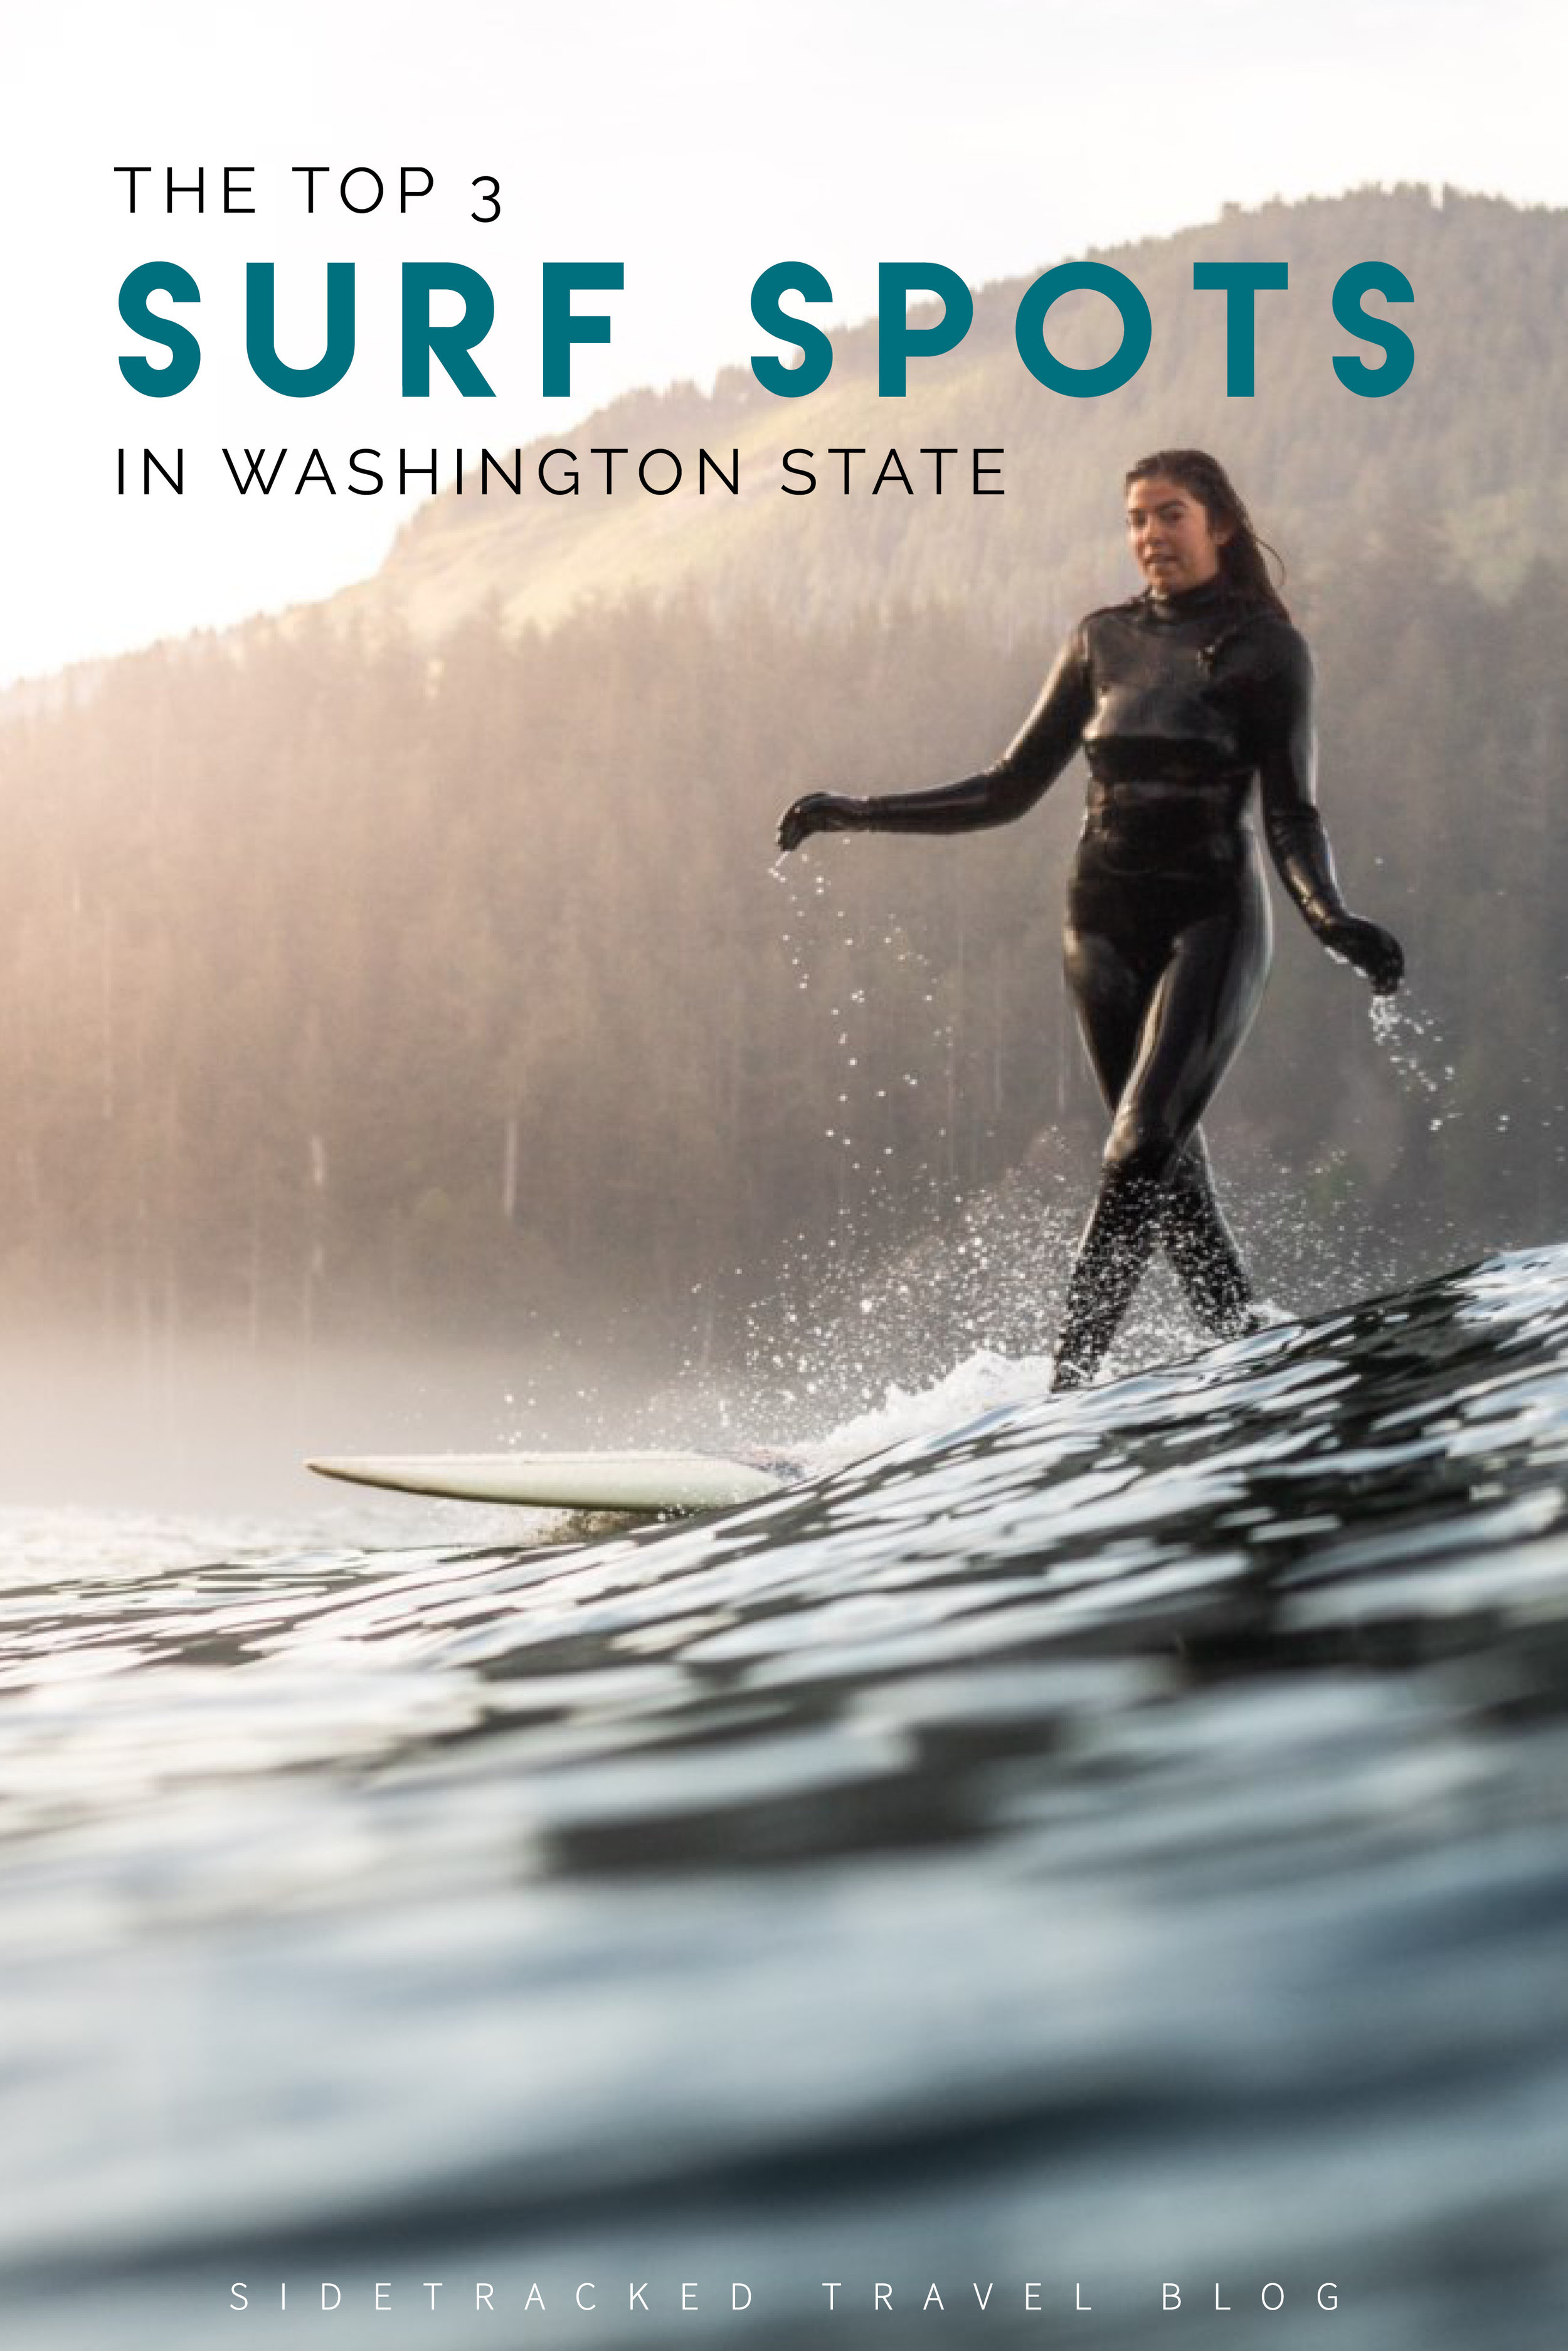 For many people, Washington state and surfing don't often live in the same sentence. And that's a huge mistake. Washington has one of the longest coastlines in the US and is home to some incredible surf spots, uncrowded breaks, and beautiful beaches.